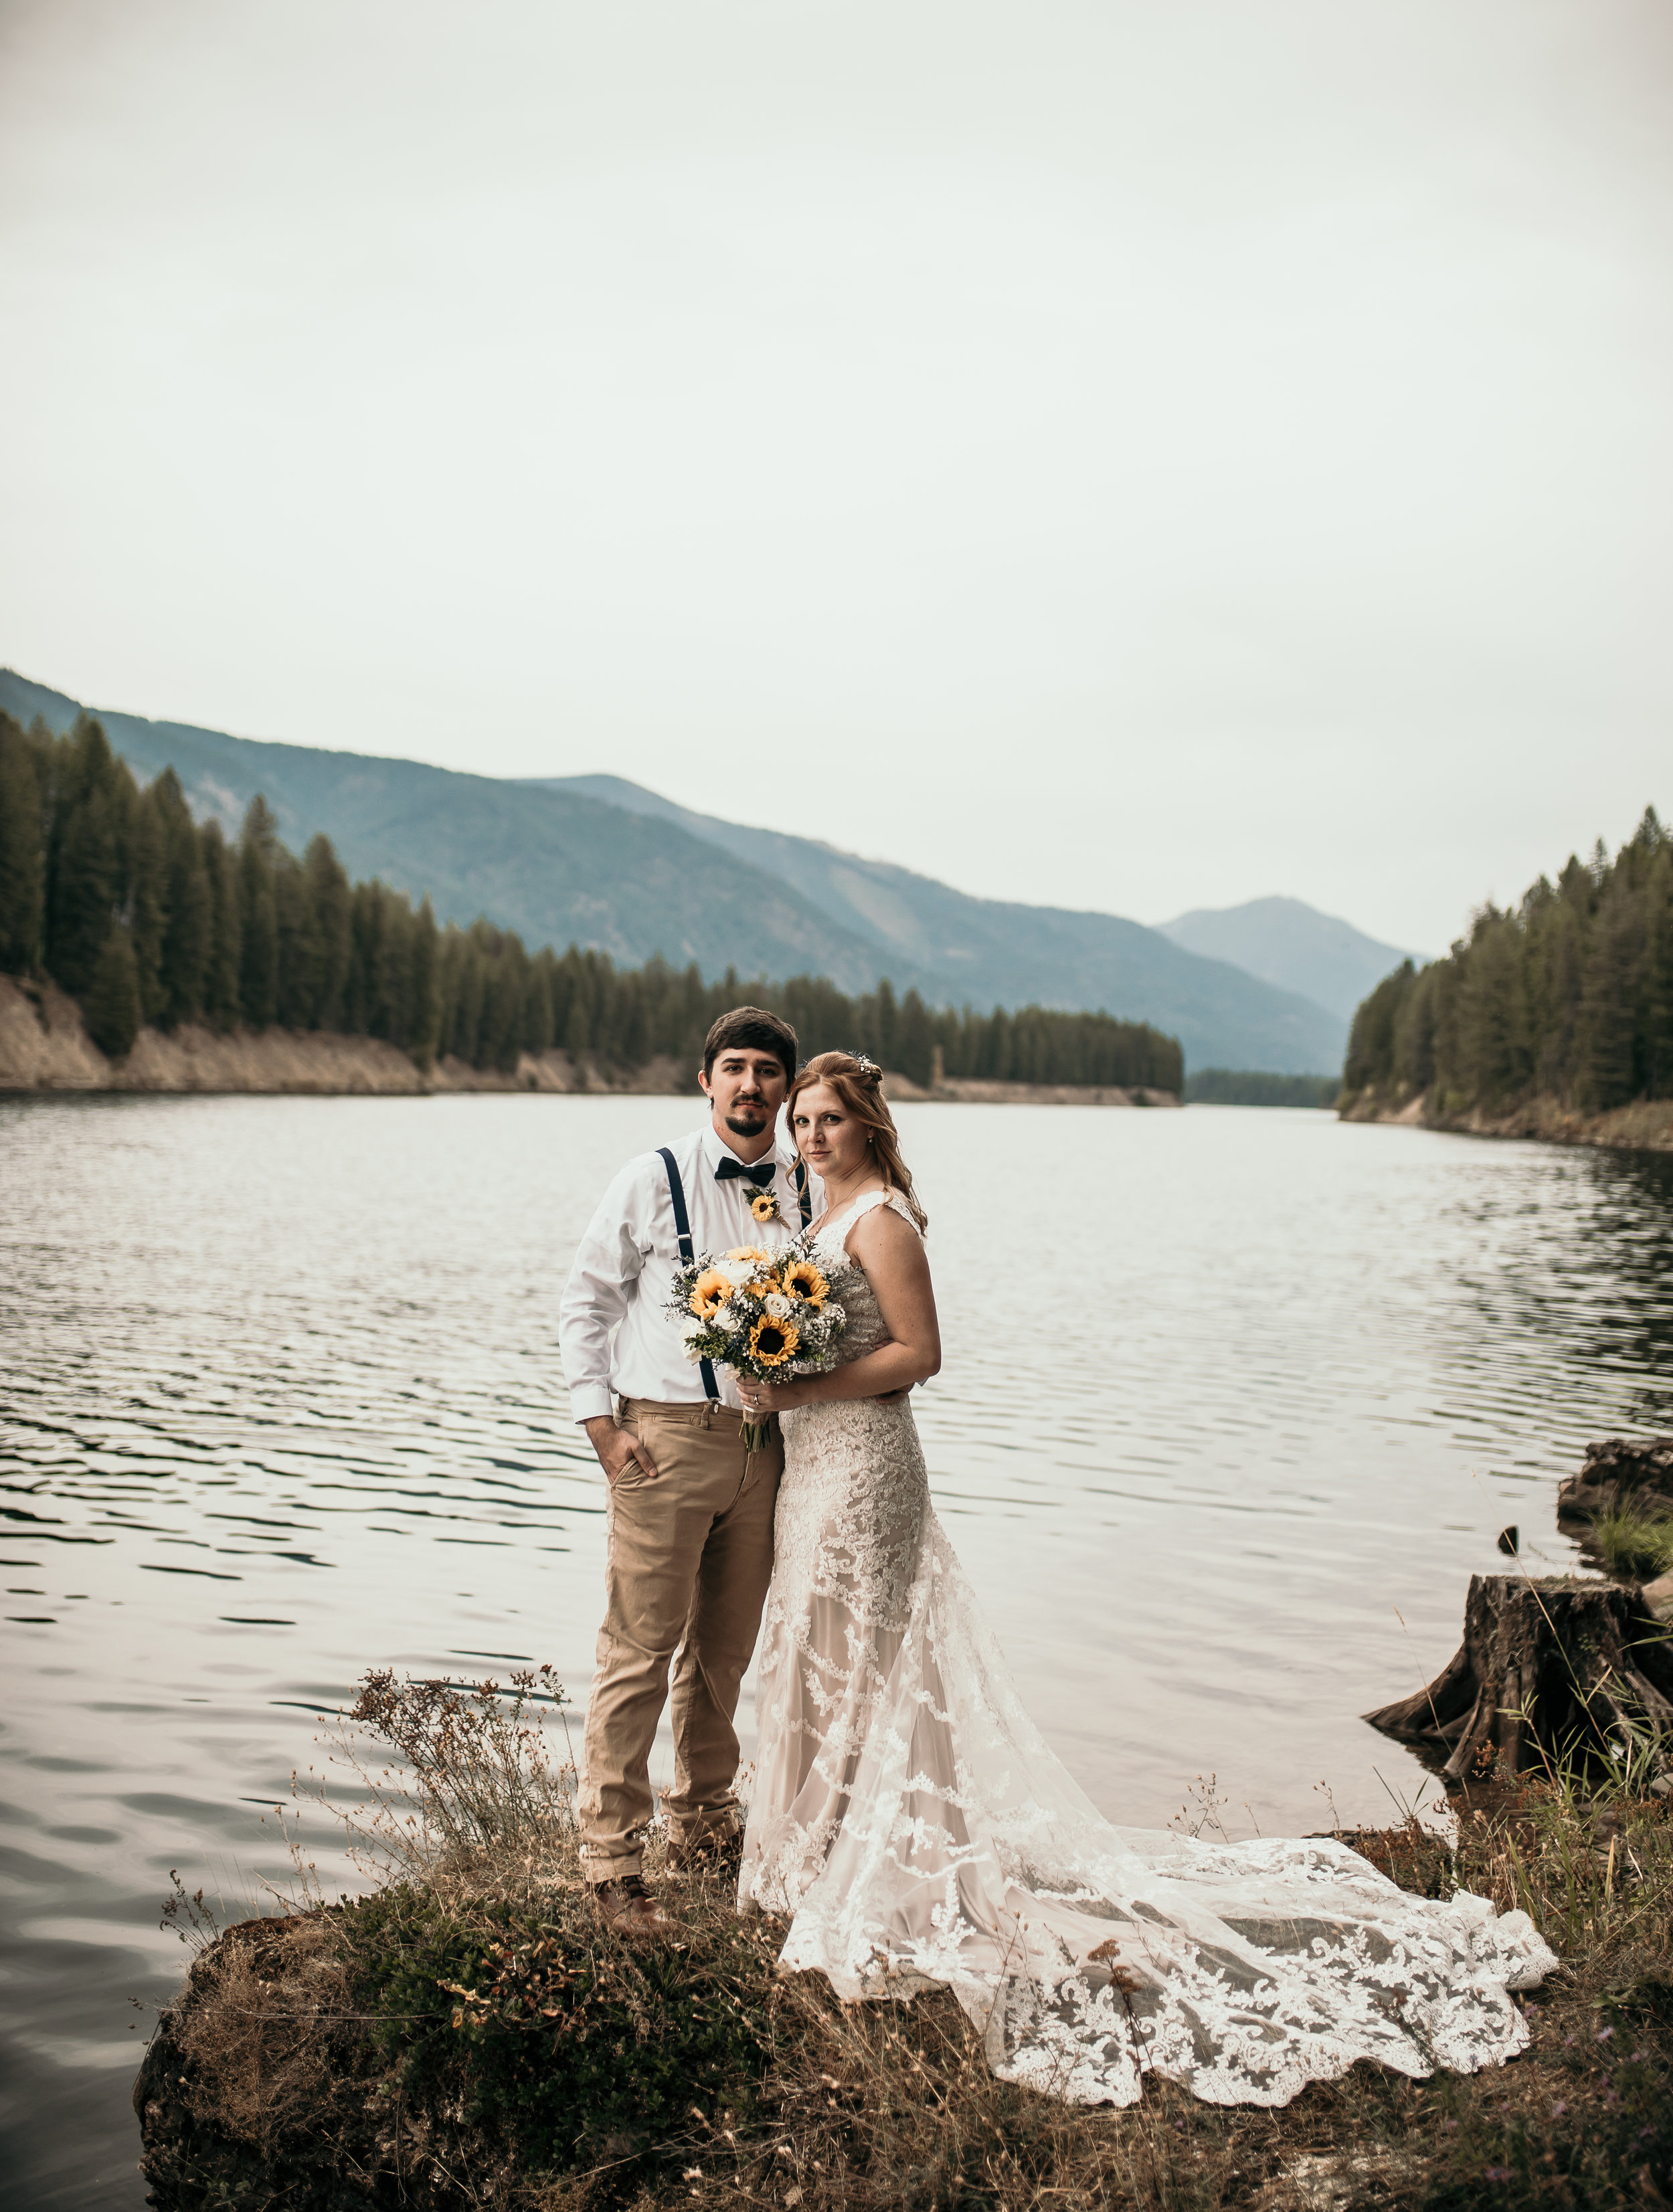 Bride and Groom standing by a river in Herron, Montana smiling at the photographer